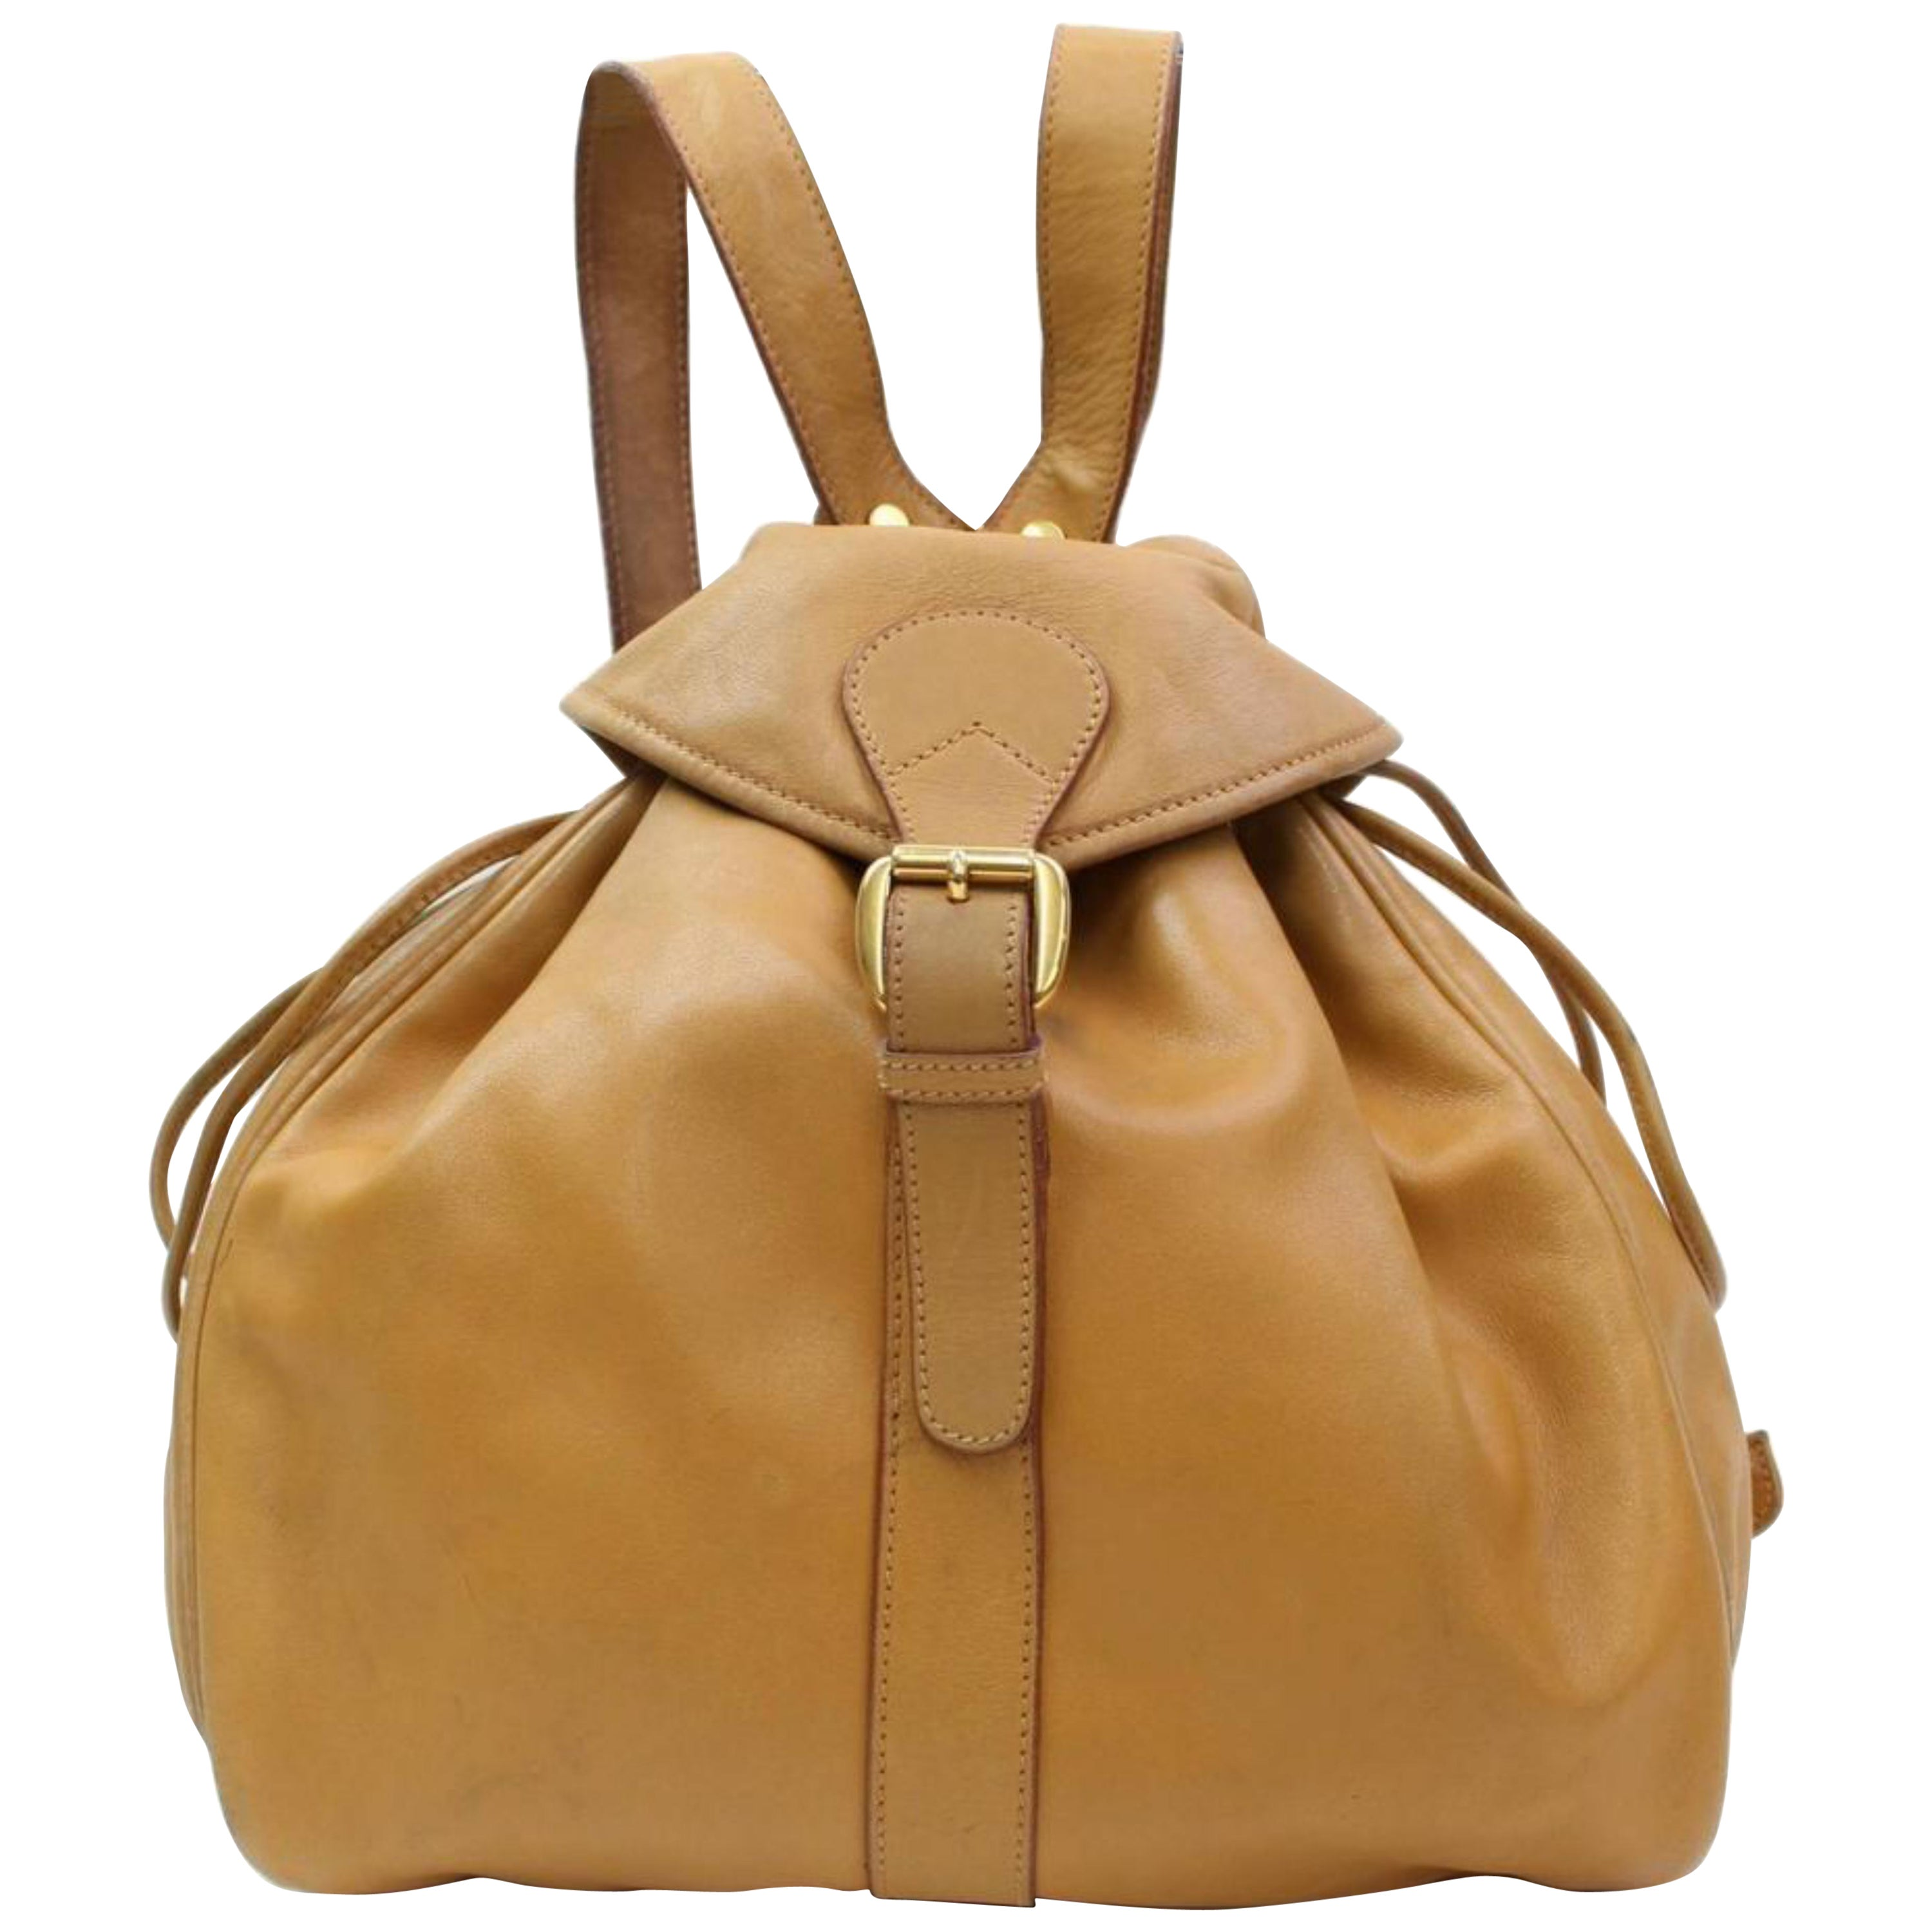 bcdebf6dc Gucci Backpack Brown Leather | Building Materials Bargain Center